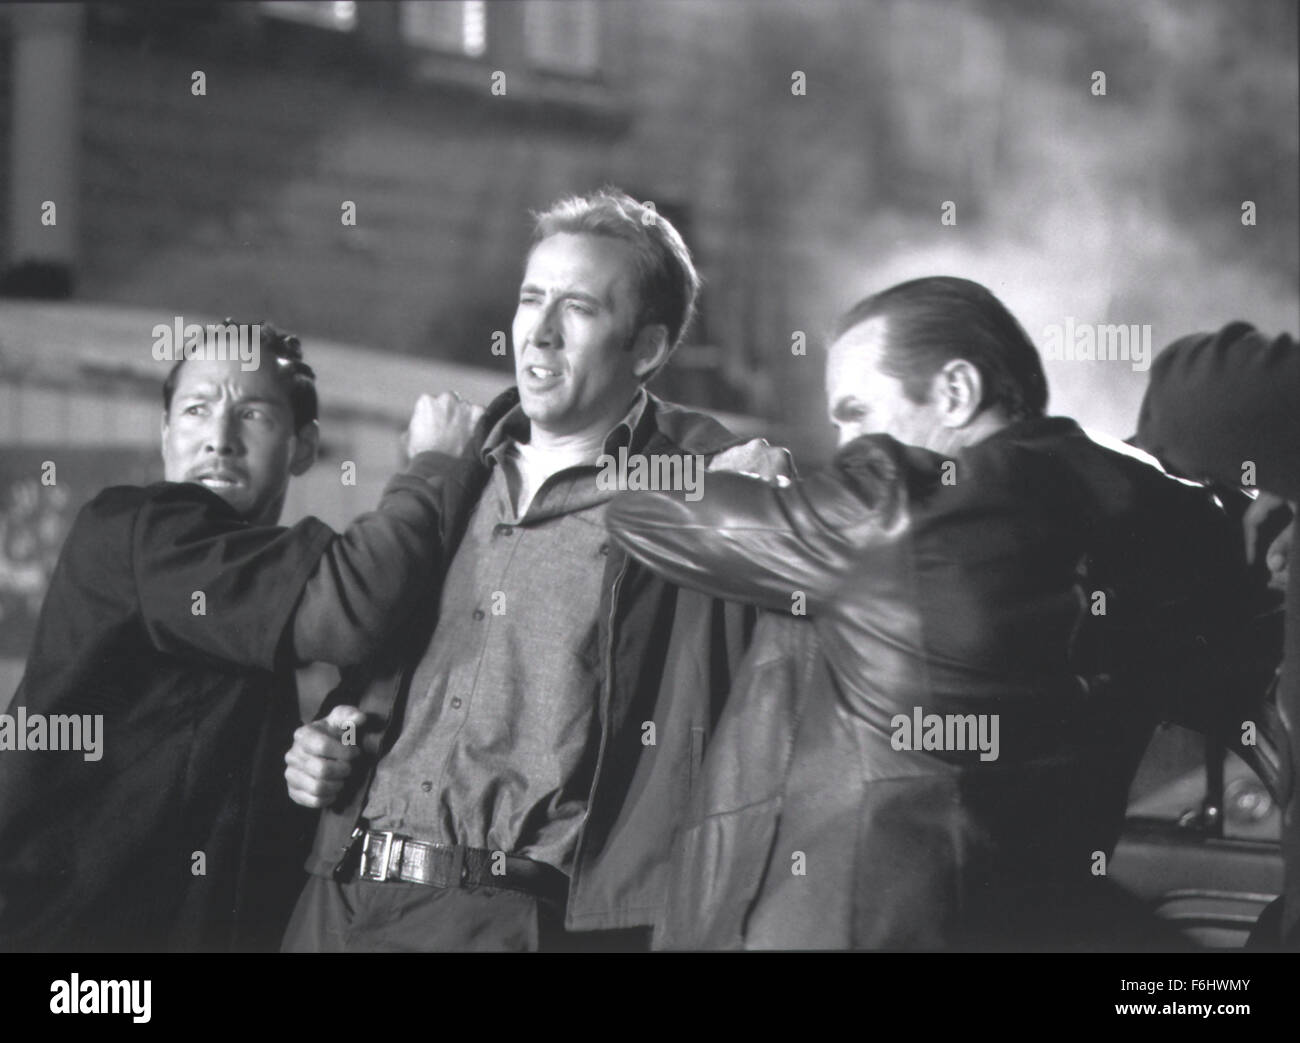 Jul 23, 2002; Hollywood, CA, USA; Actor NICOLAS CAGES (C) as Randall 'Memphis' Raines in the movie 'Gone in 60 Seconds.'. Stock Photo